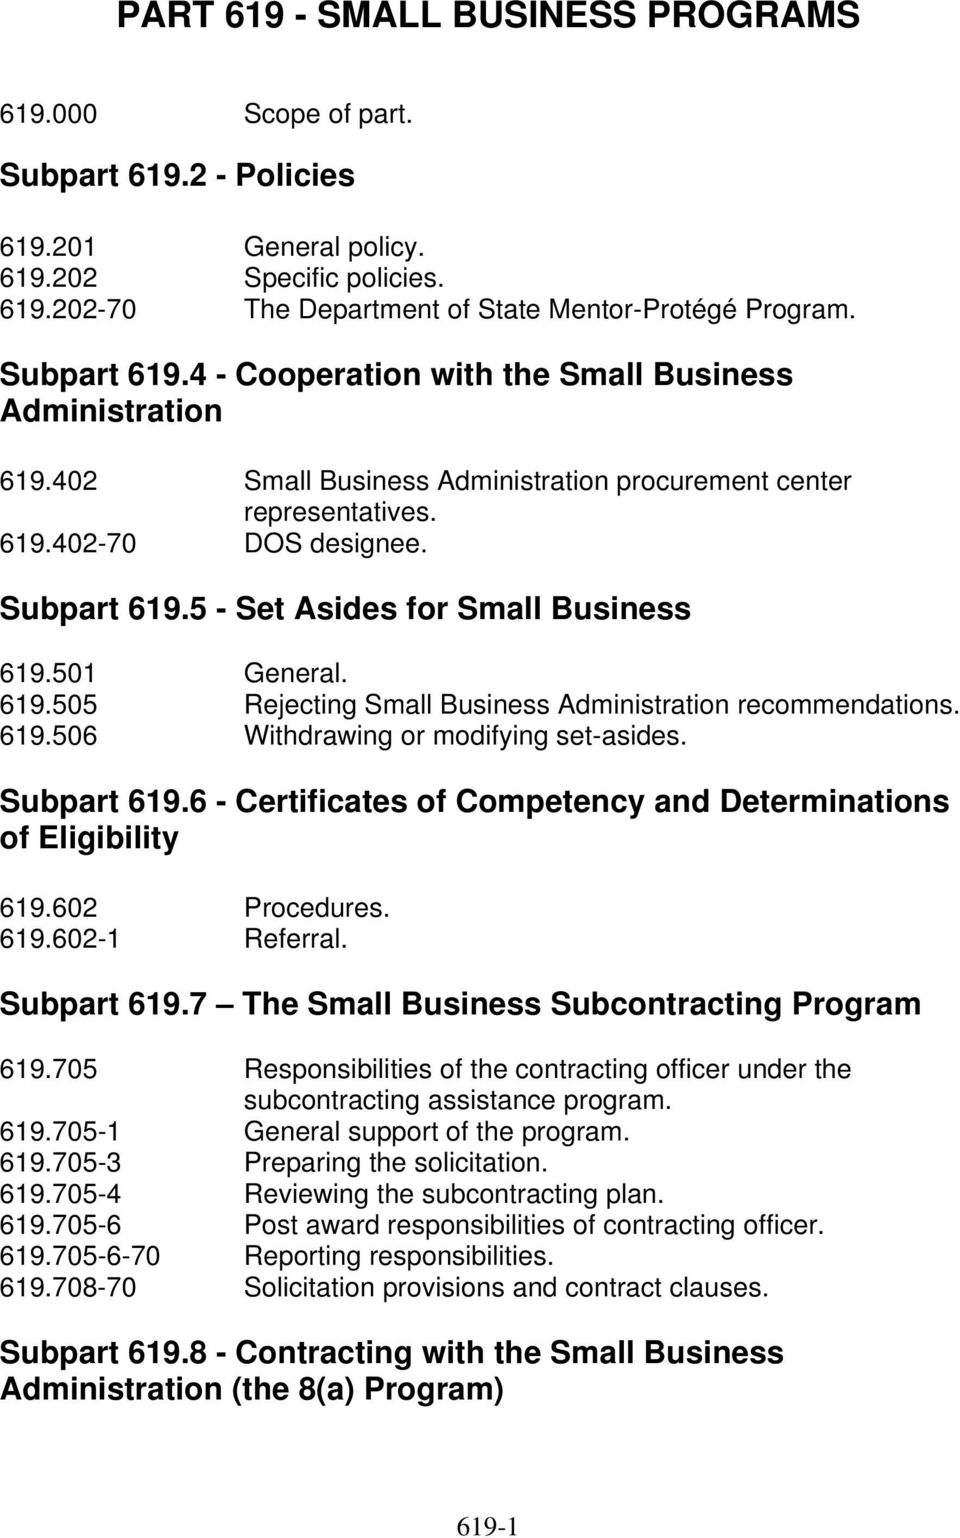 5 - Set Asides for Small Business 619.501 General. 619.505 Rejecting Small Business Administration recommendations. 619.506 Withdrawing or modifying set-asides. Subpart 619.